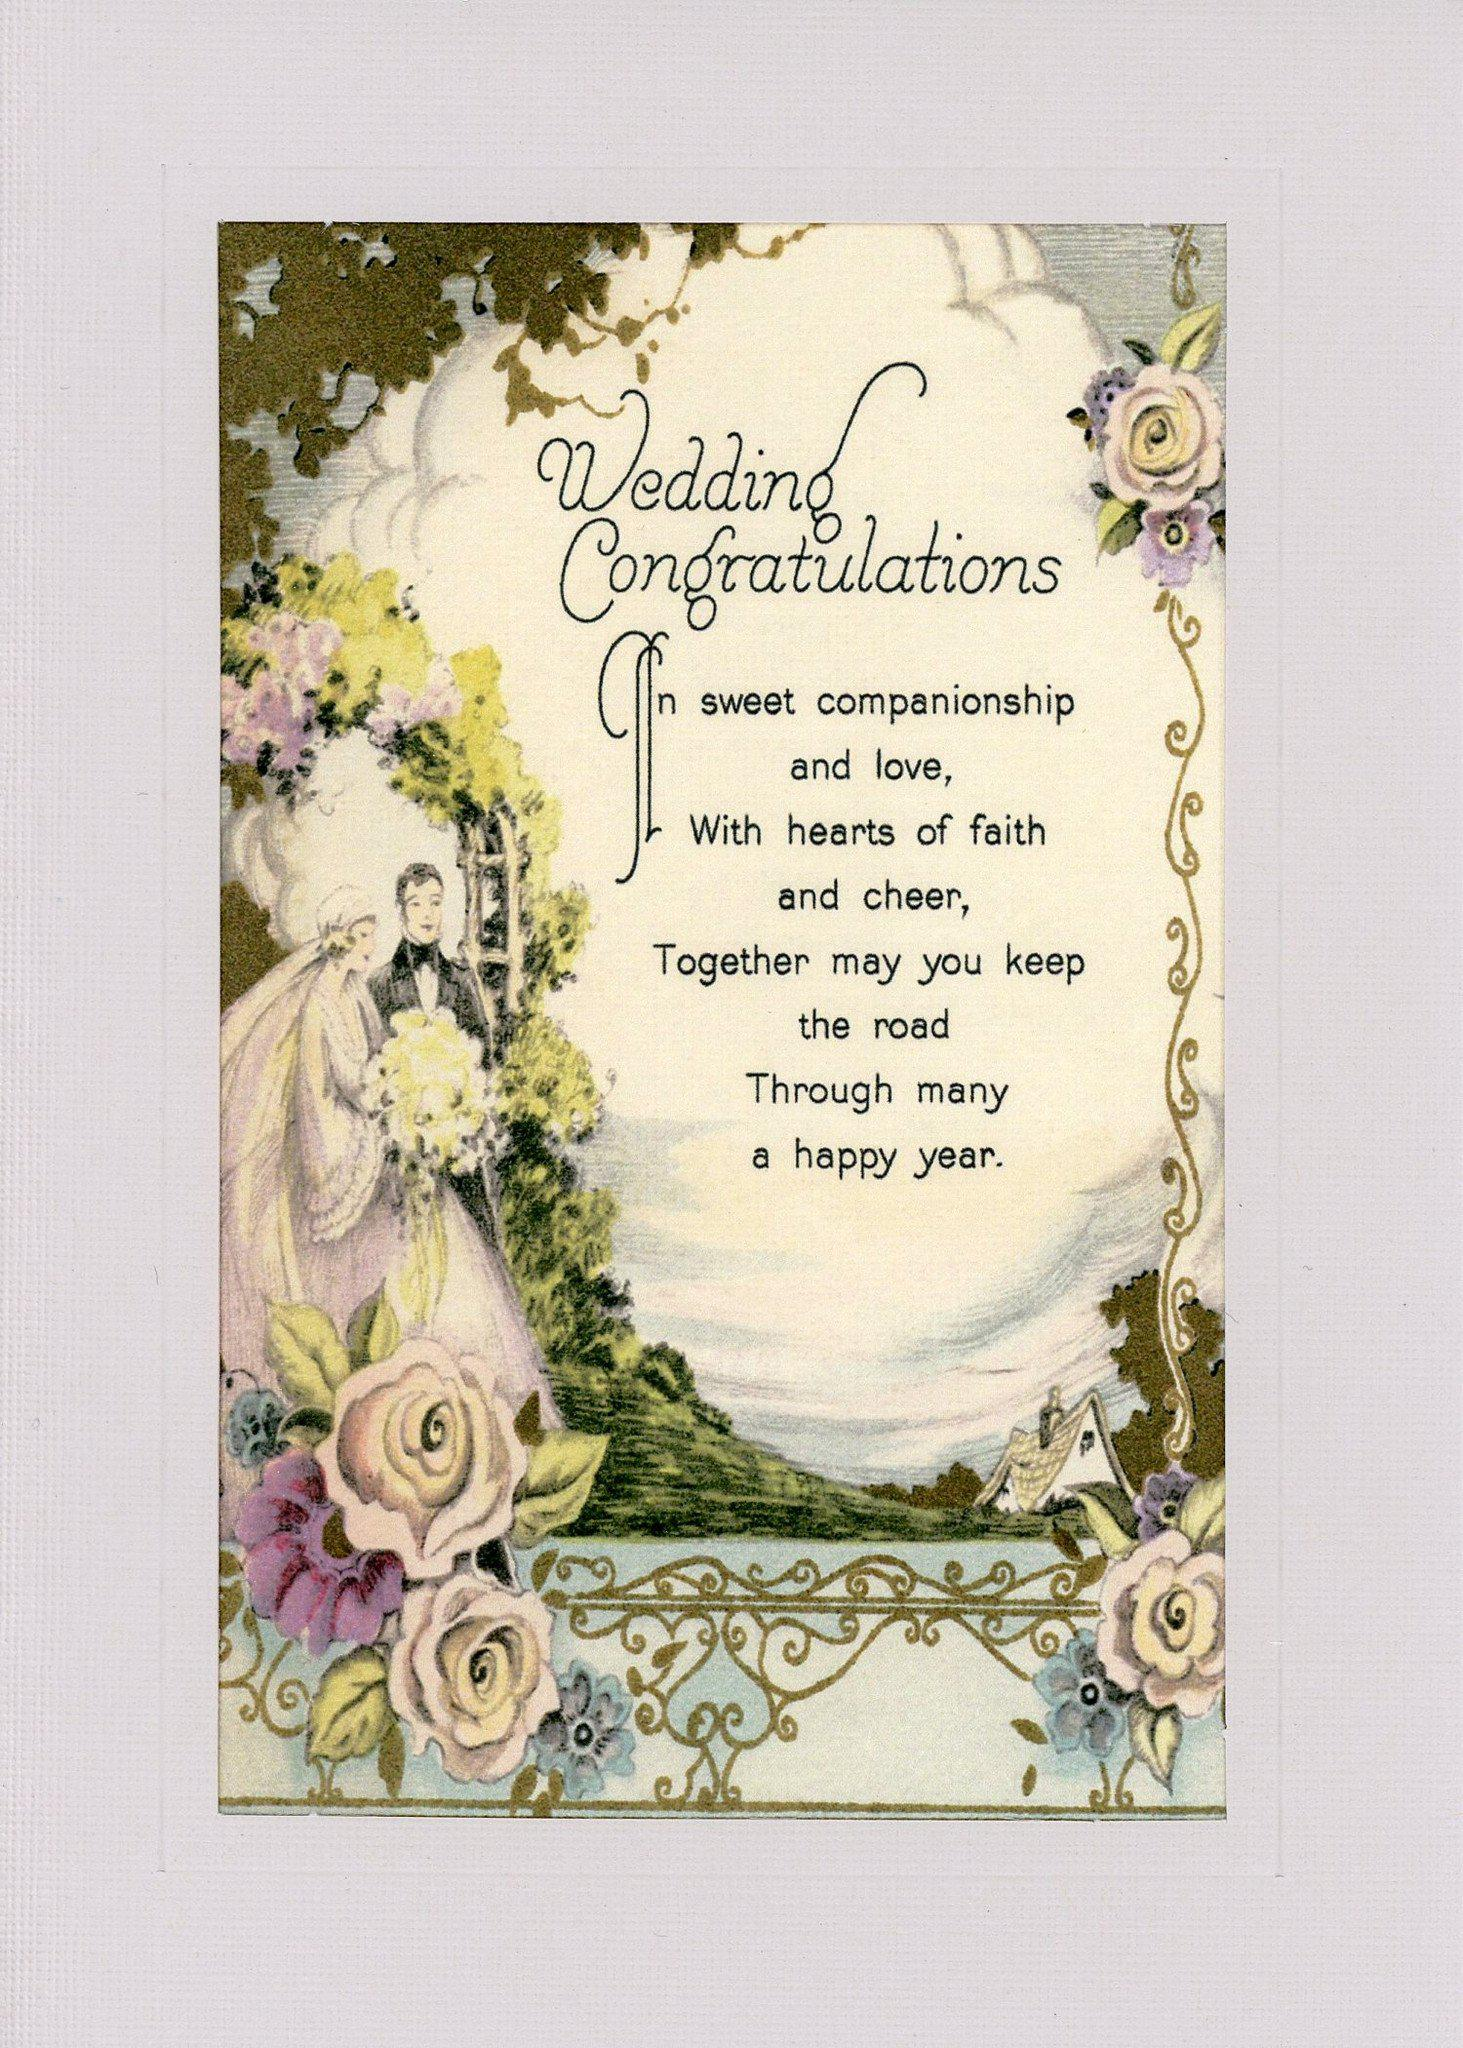 Wedding Congratulations-Greetings from the Past-Plymouth Cards